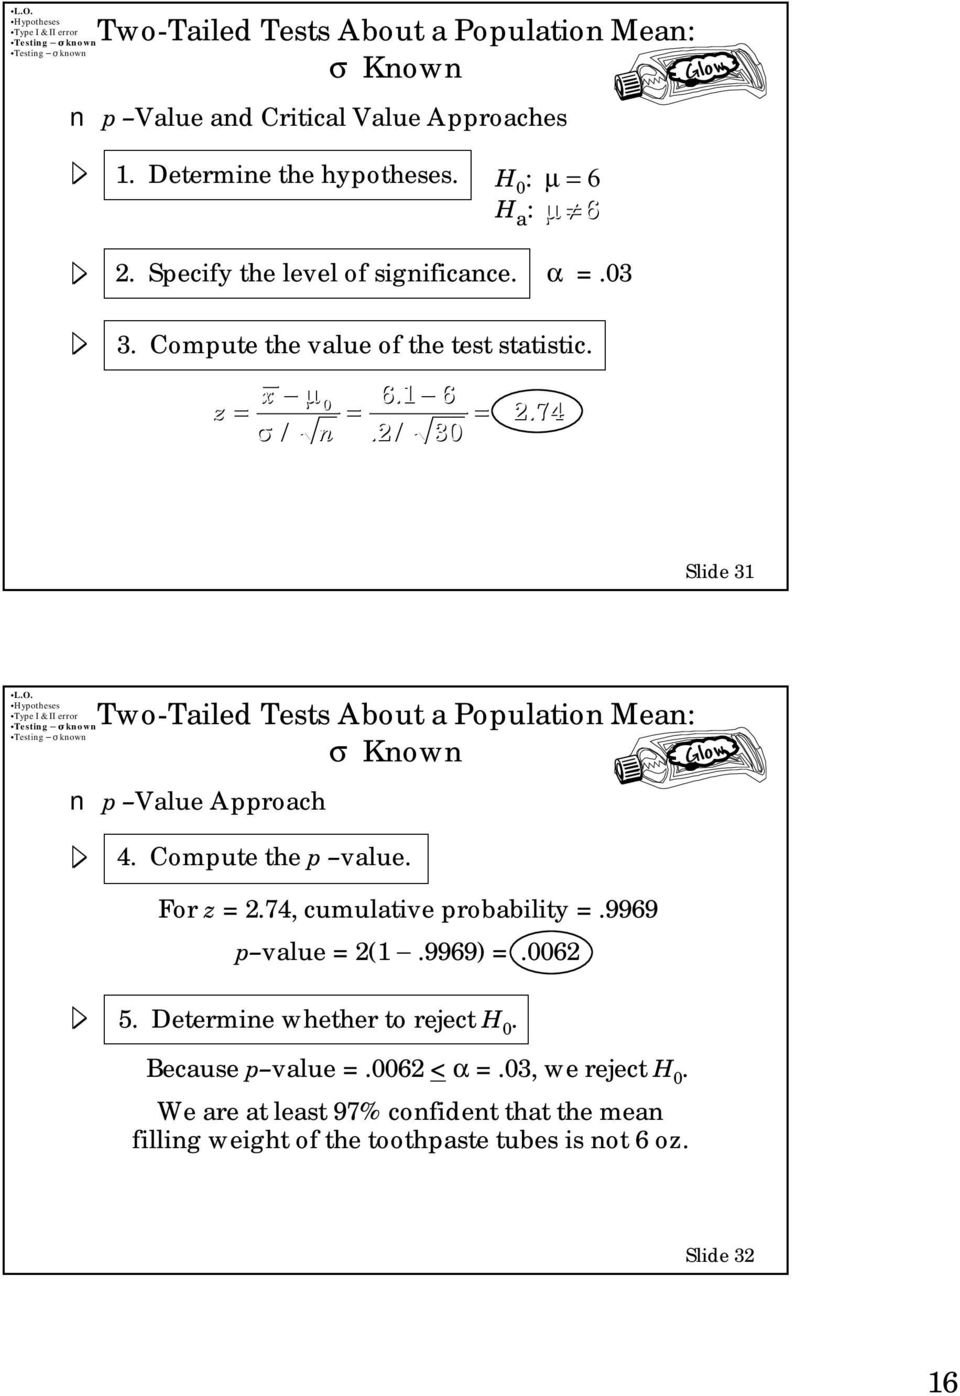 74 Slide 31 Two-Tailed Tests About a Population Mean: p Value Approach Glow 4. Compute the p value. For z = 2.74, cumulative probability =.